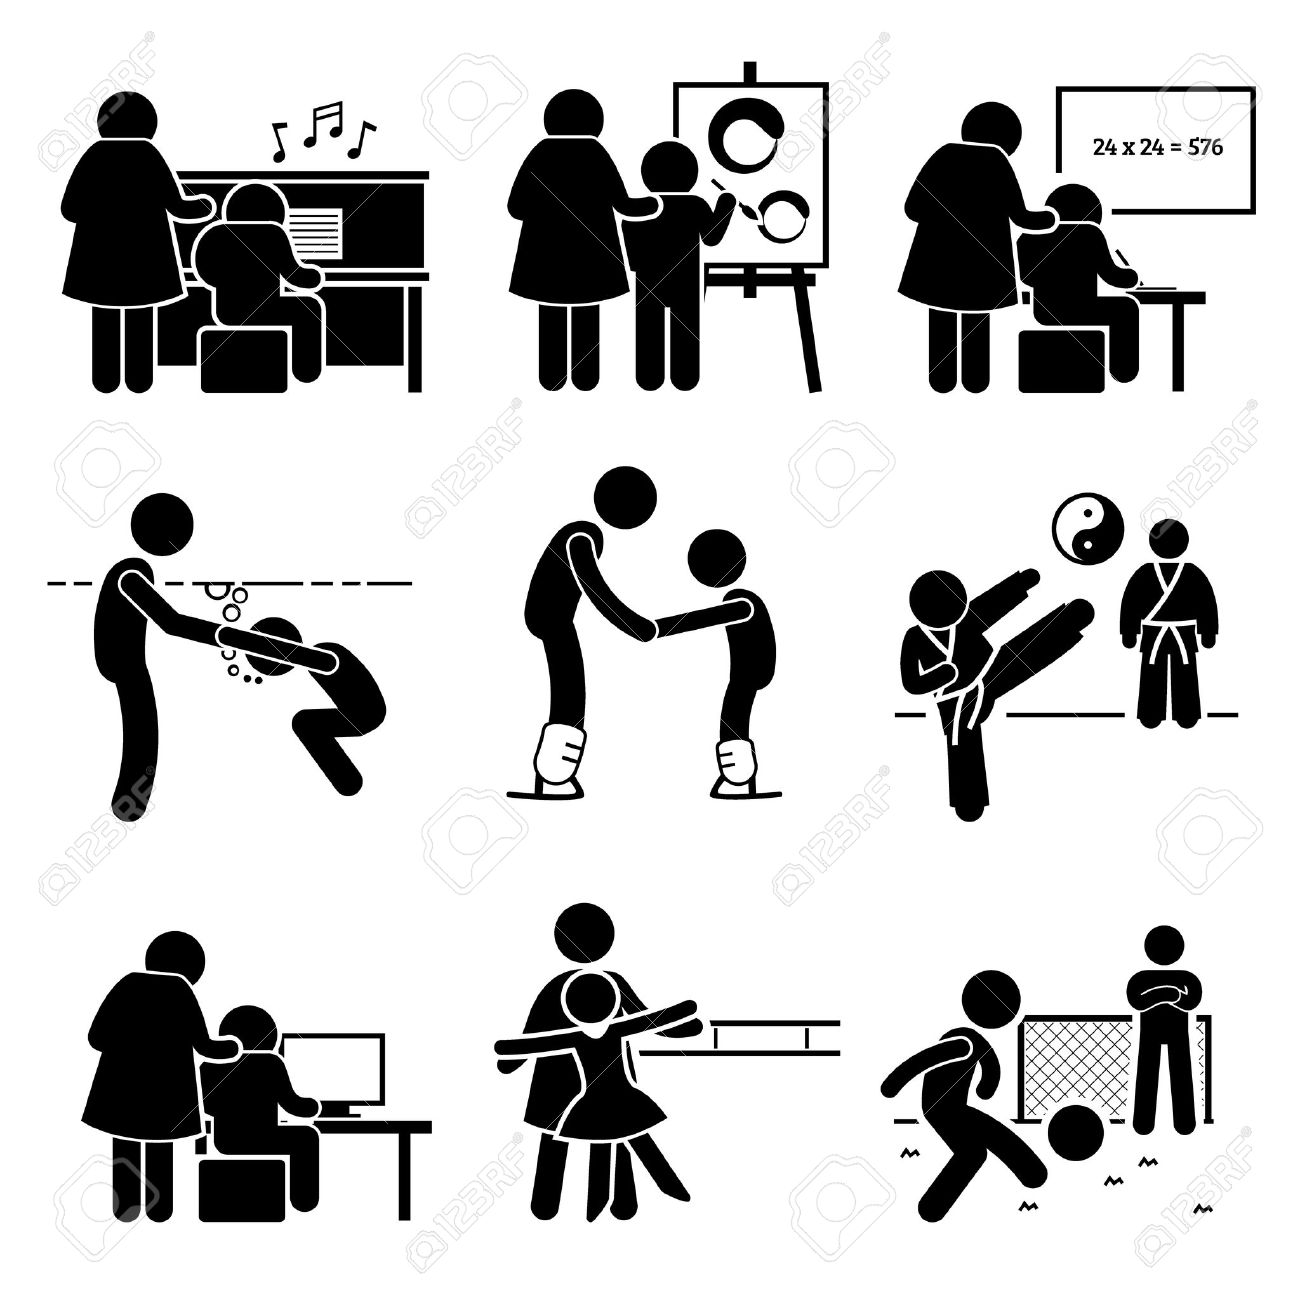 46870094-Student-Learning-Music-Art-Academic-Swimming-Martial-Arts-Football-Computer-Dancing-and-Ice-Skating--Stock-Vector